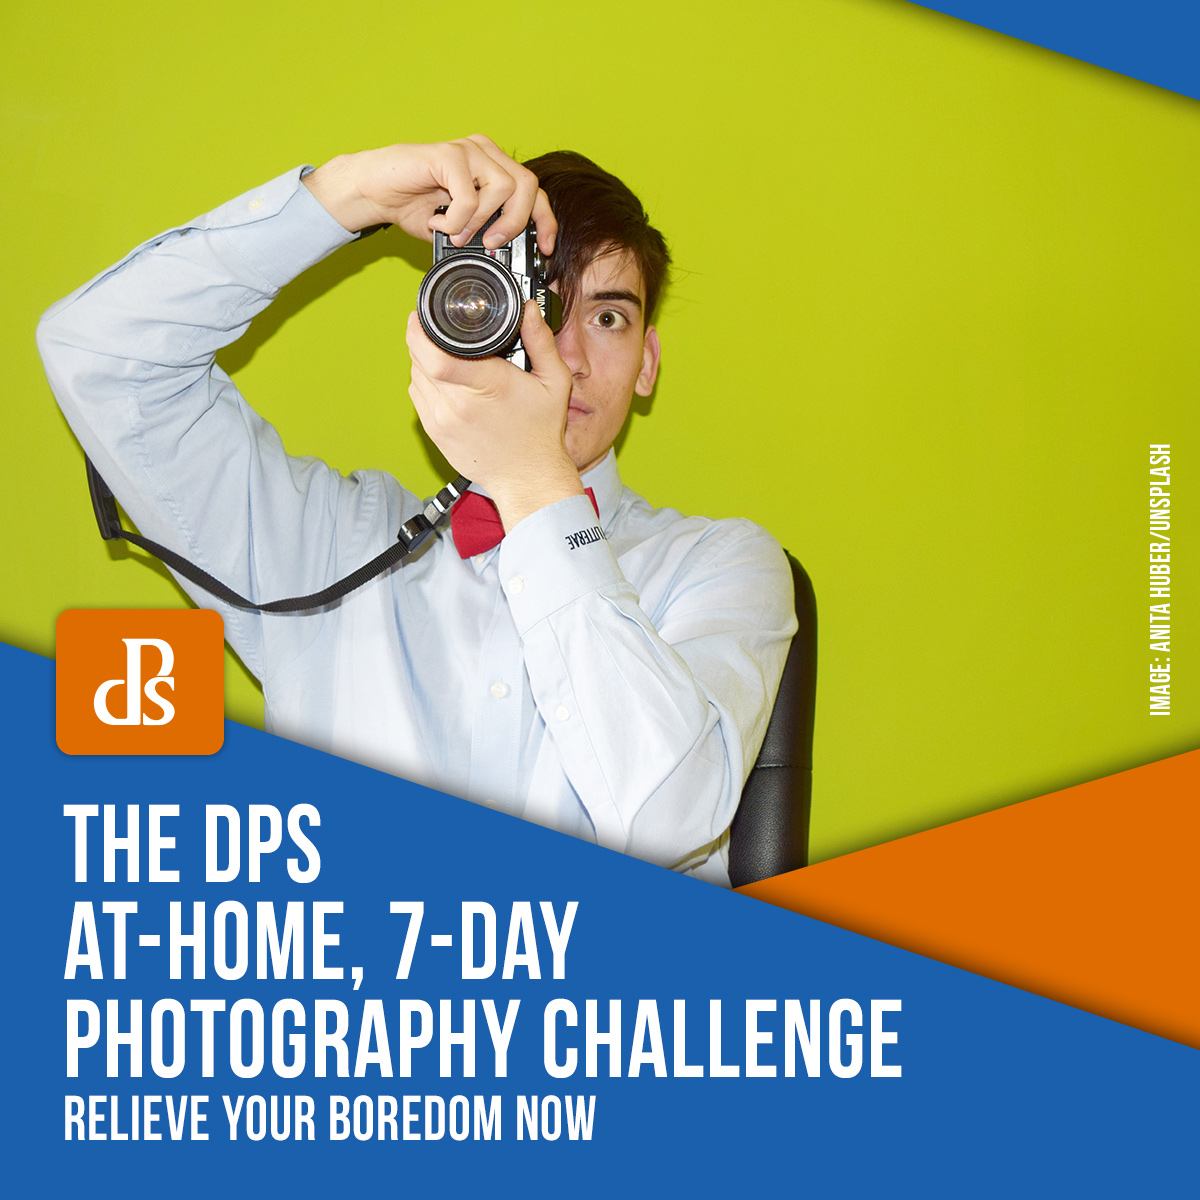 dps-at-home-7-day-photography-challenge